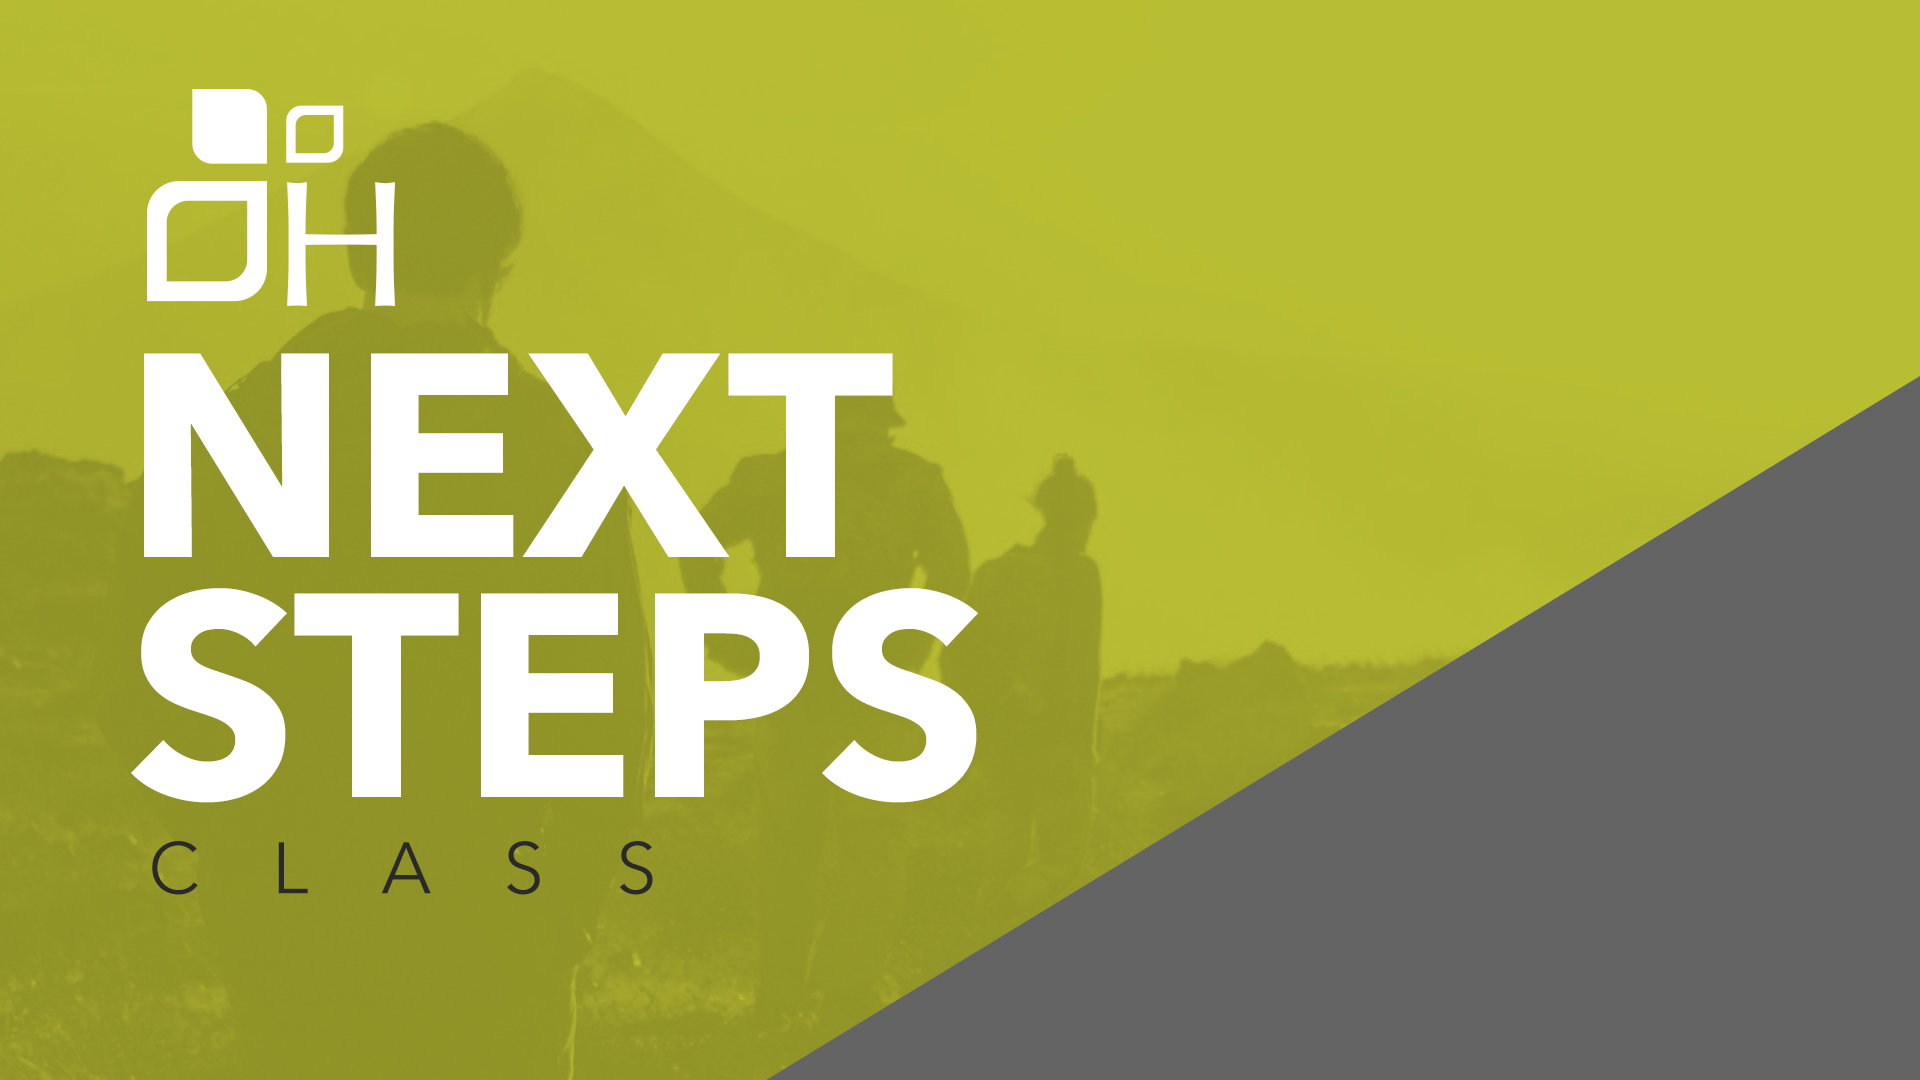 Next steps slide blank